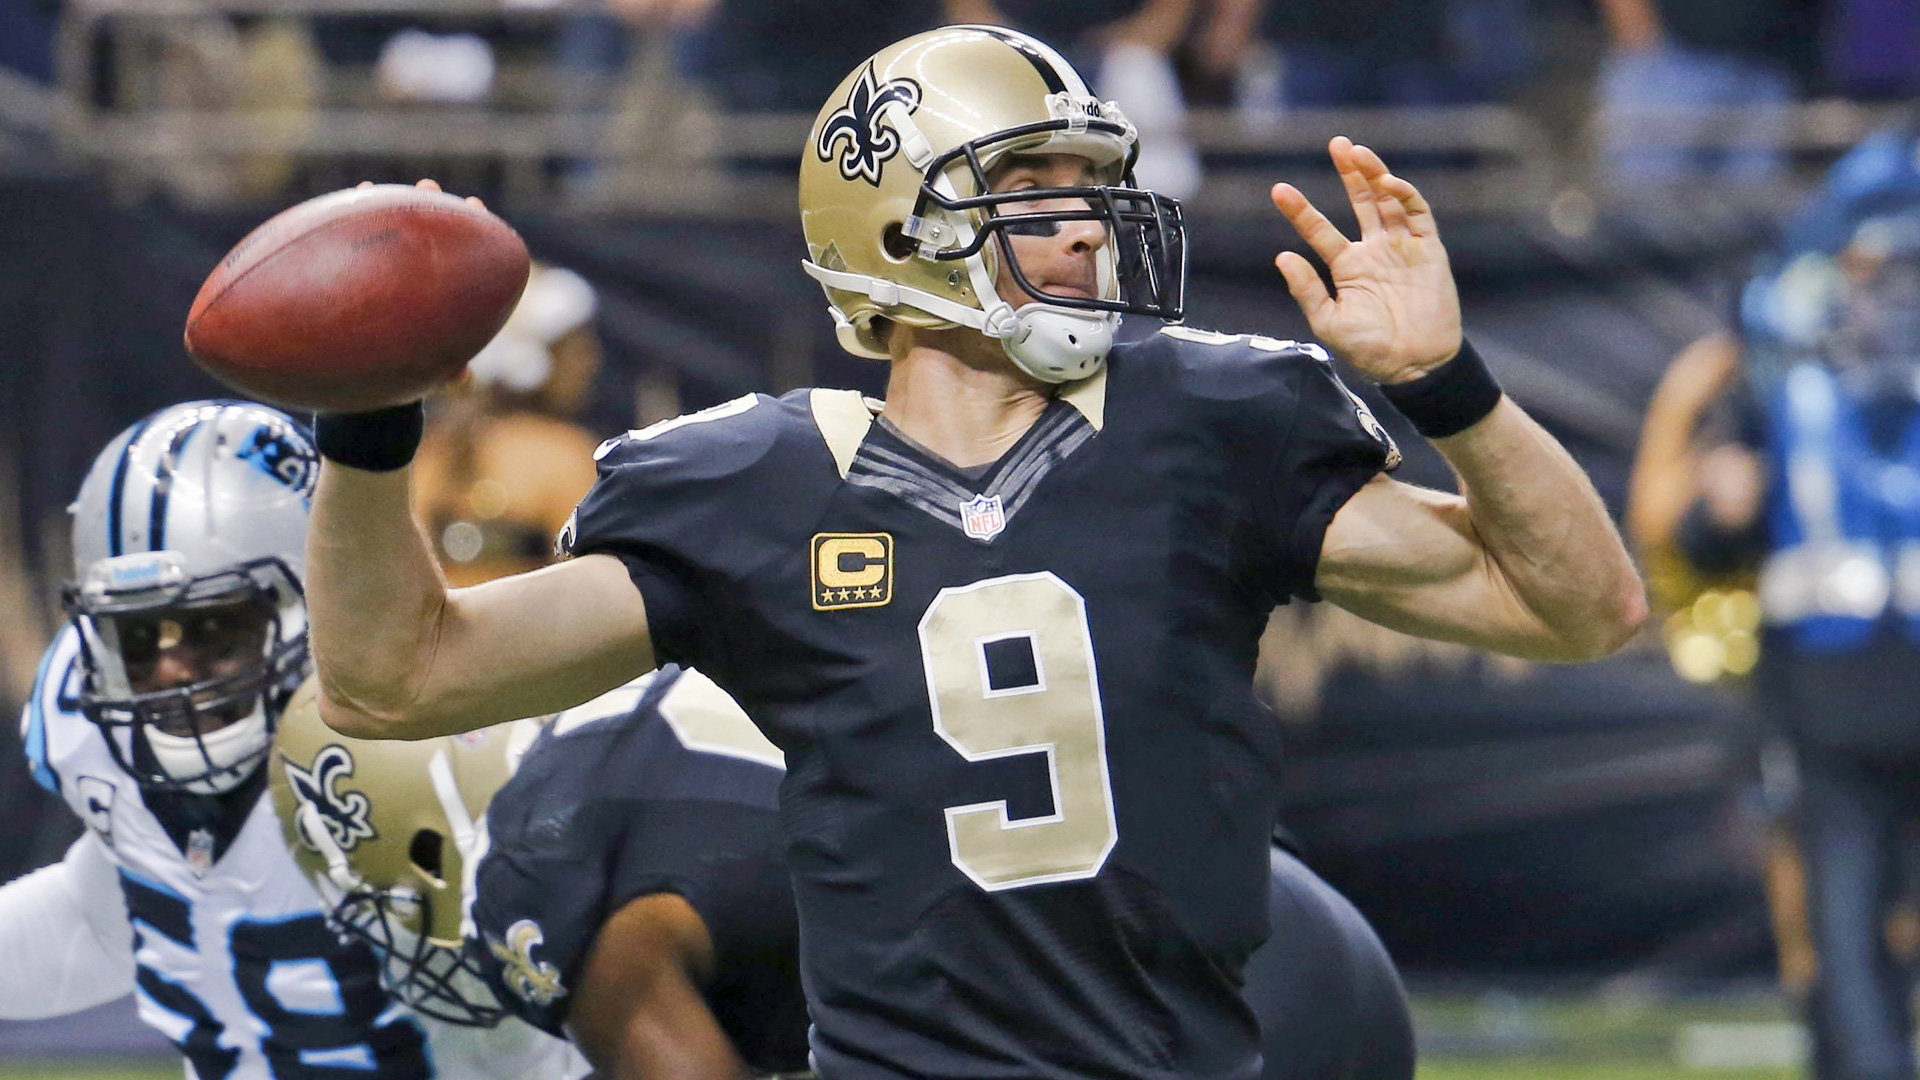 Drew-Brees2-120813-AP-FTR.jpg